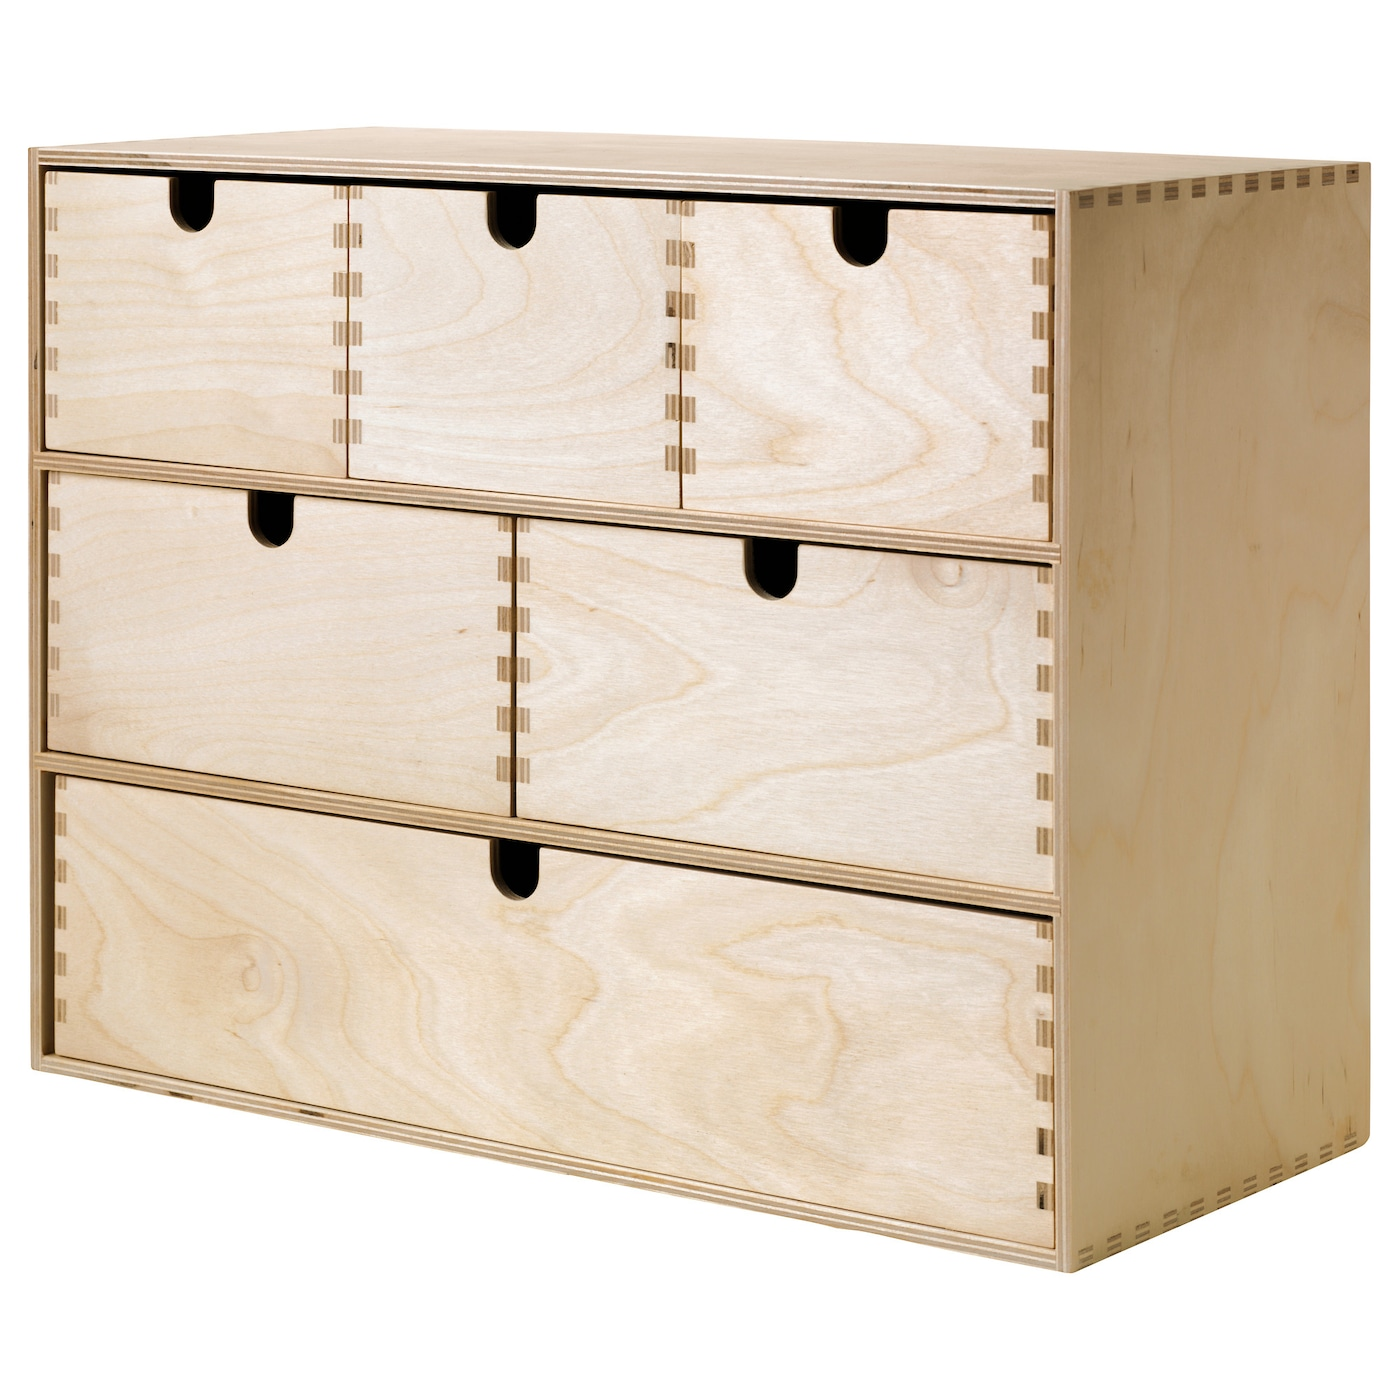 MOPPE Mini storage chest - birch plywood 448 ½x448x448 448/48 ""